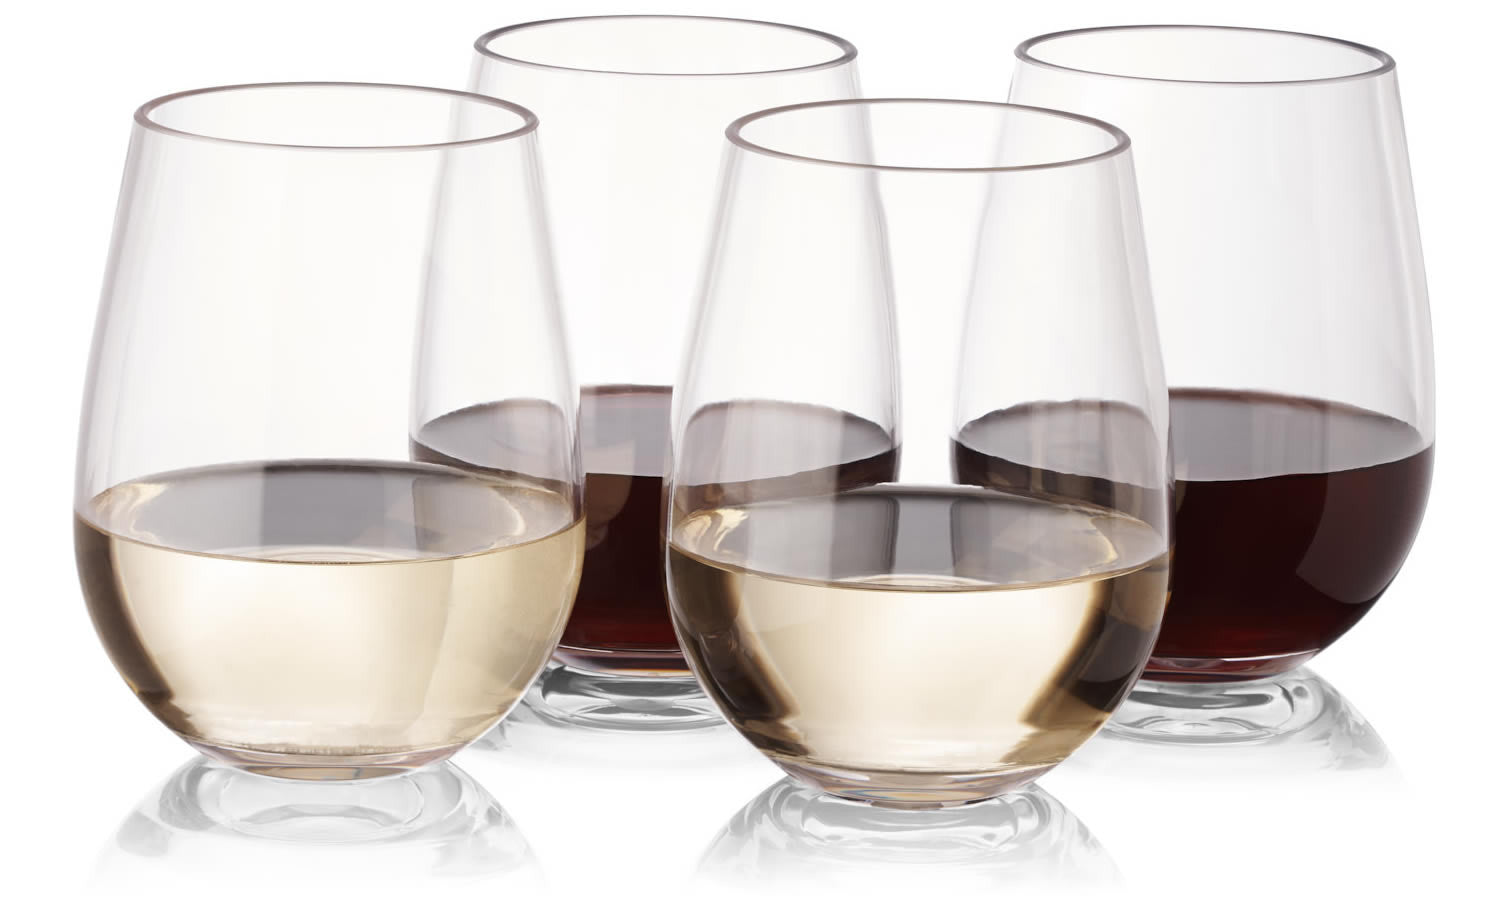 2a5a26de45a Notmog 16 Stemless Wine Glasses Office Set Unbreakable Reusable Plastic  Drinking Glass Tumbler 450Ml 16Oz